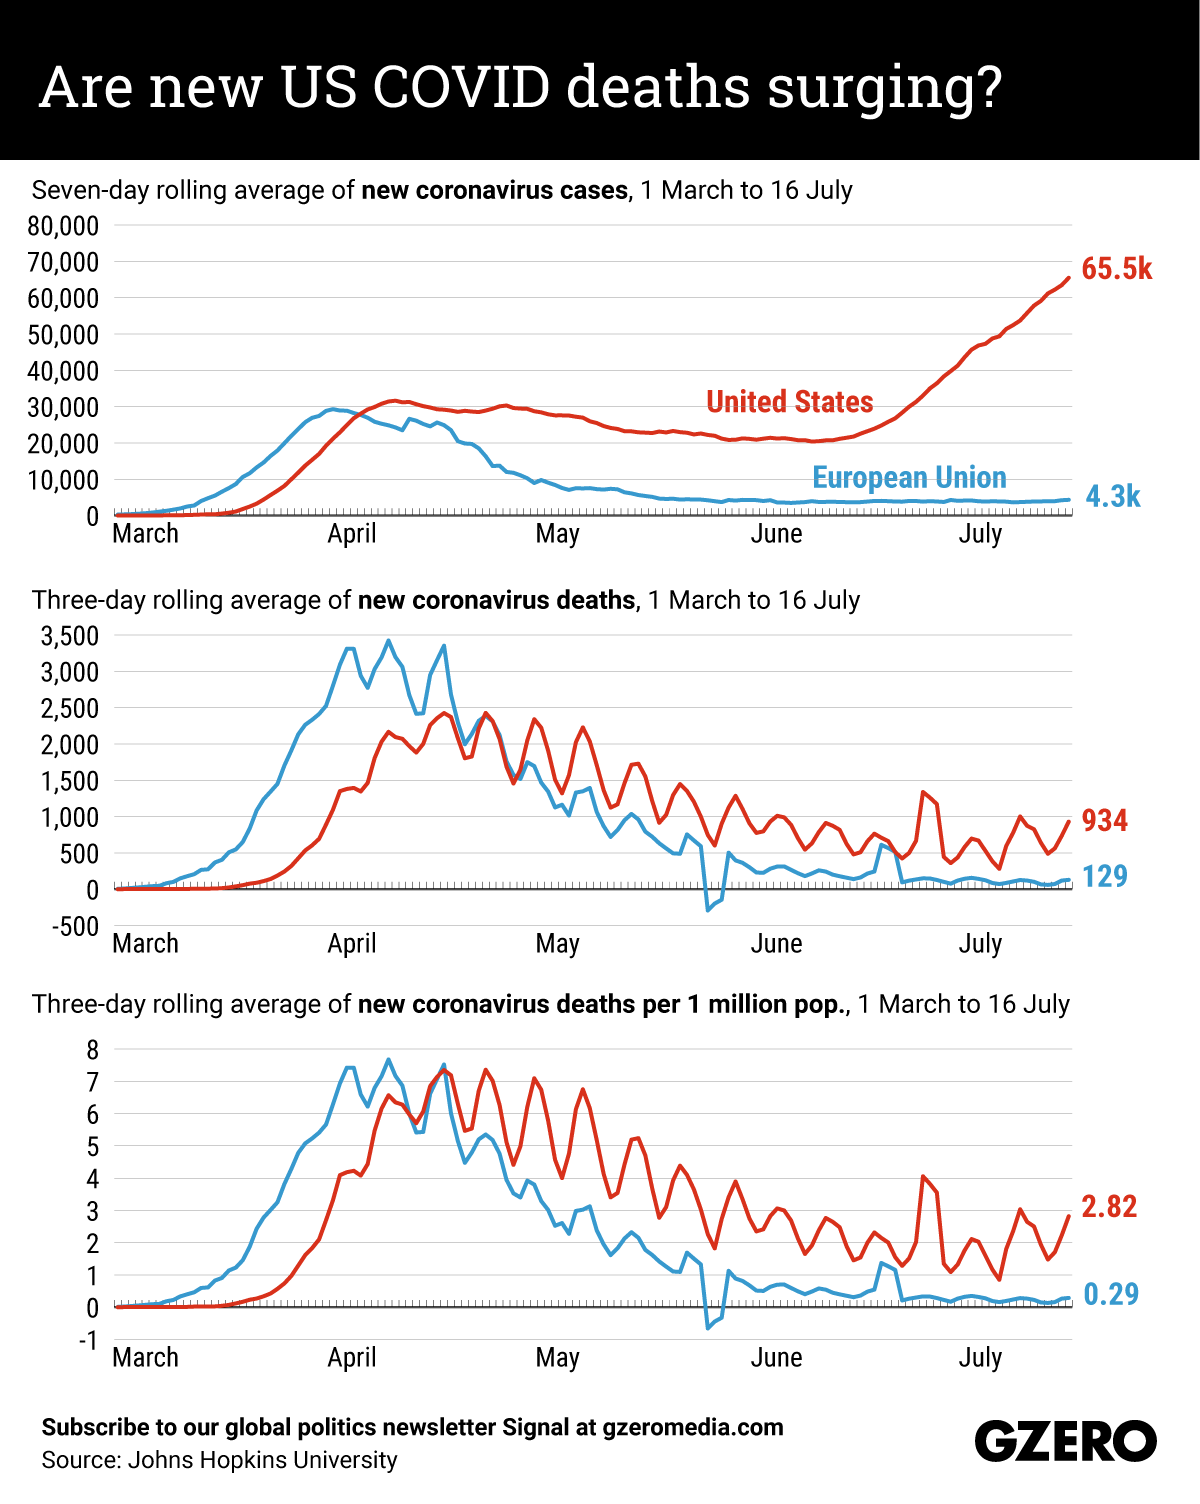 The Graphic Truth: Are new US COVID deaths surging vs EU?